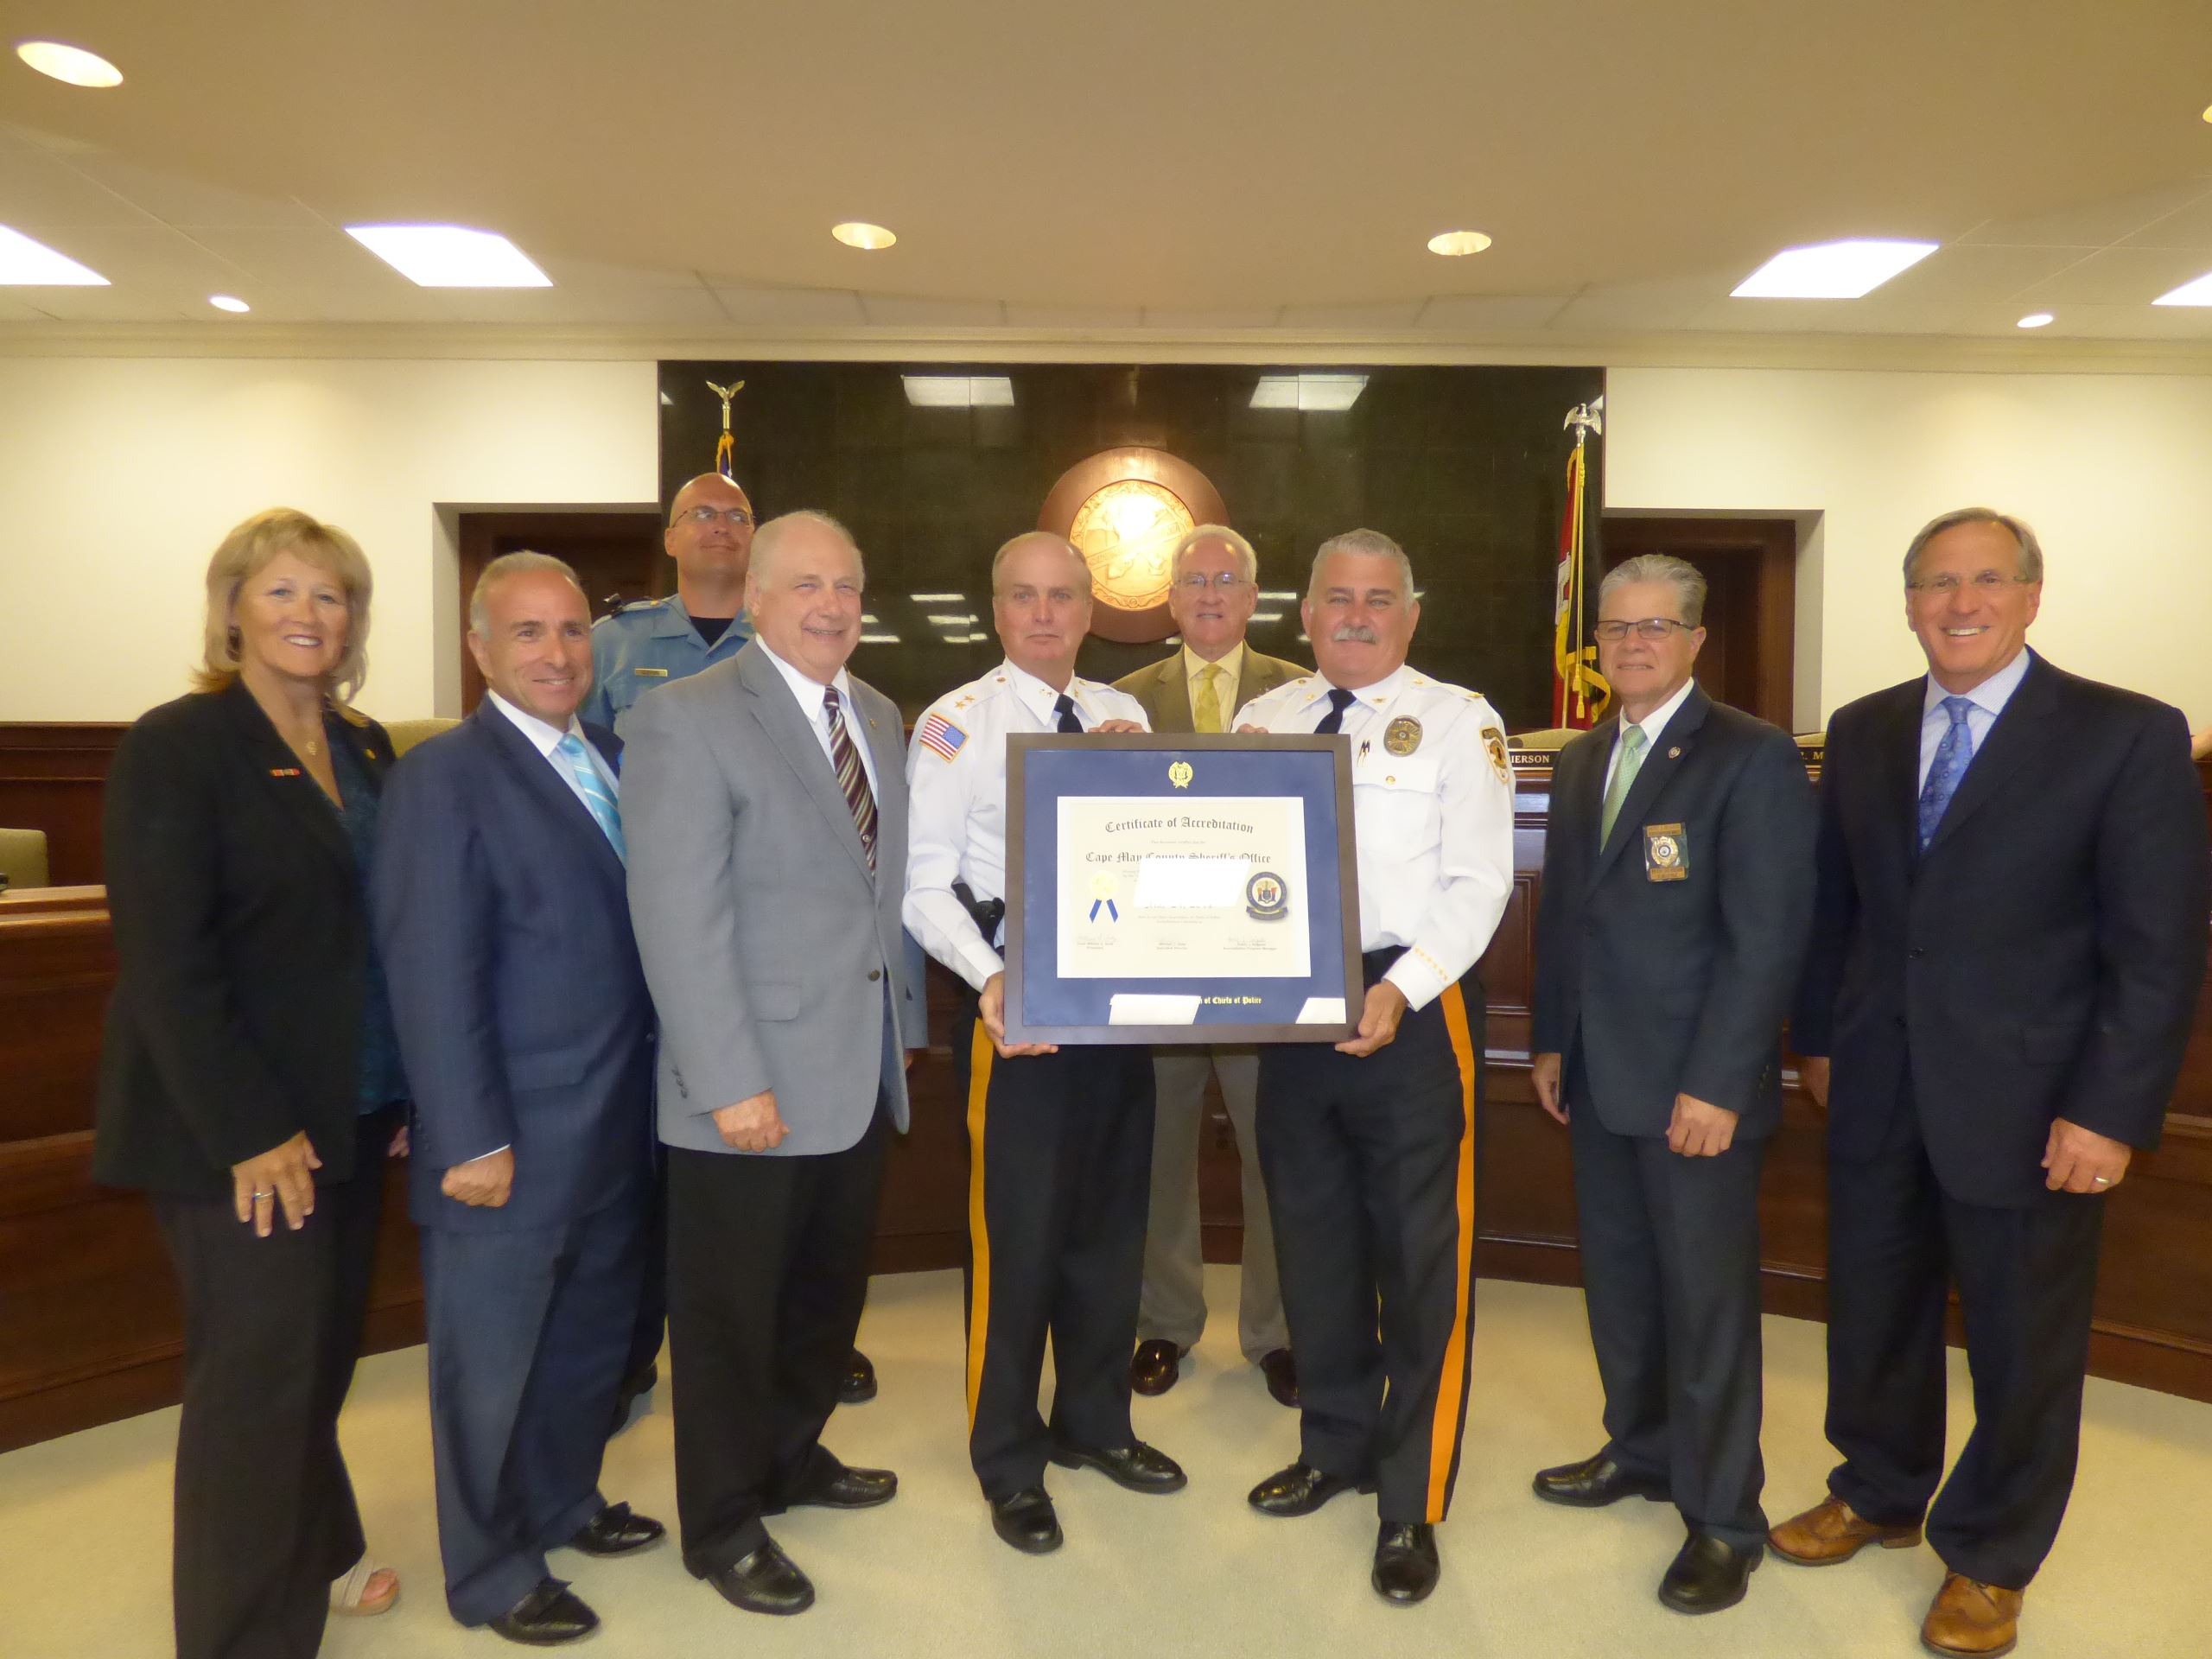 Photo: Sheriff's Office Receives Re-Accreditation Certificate 2